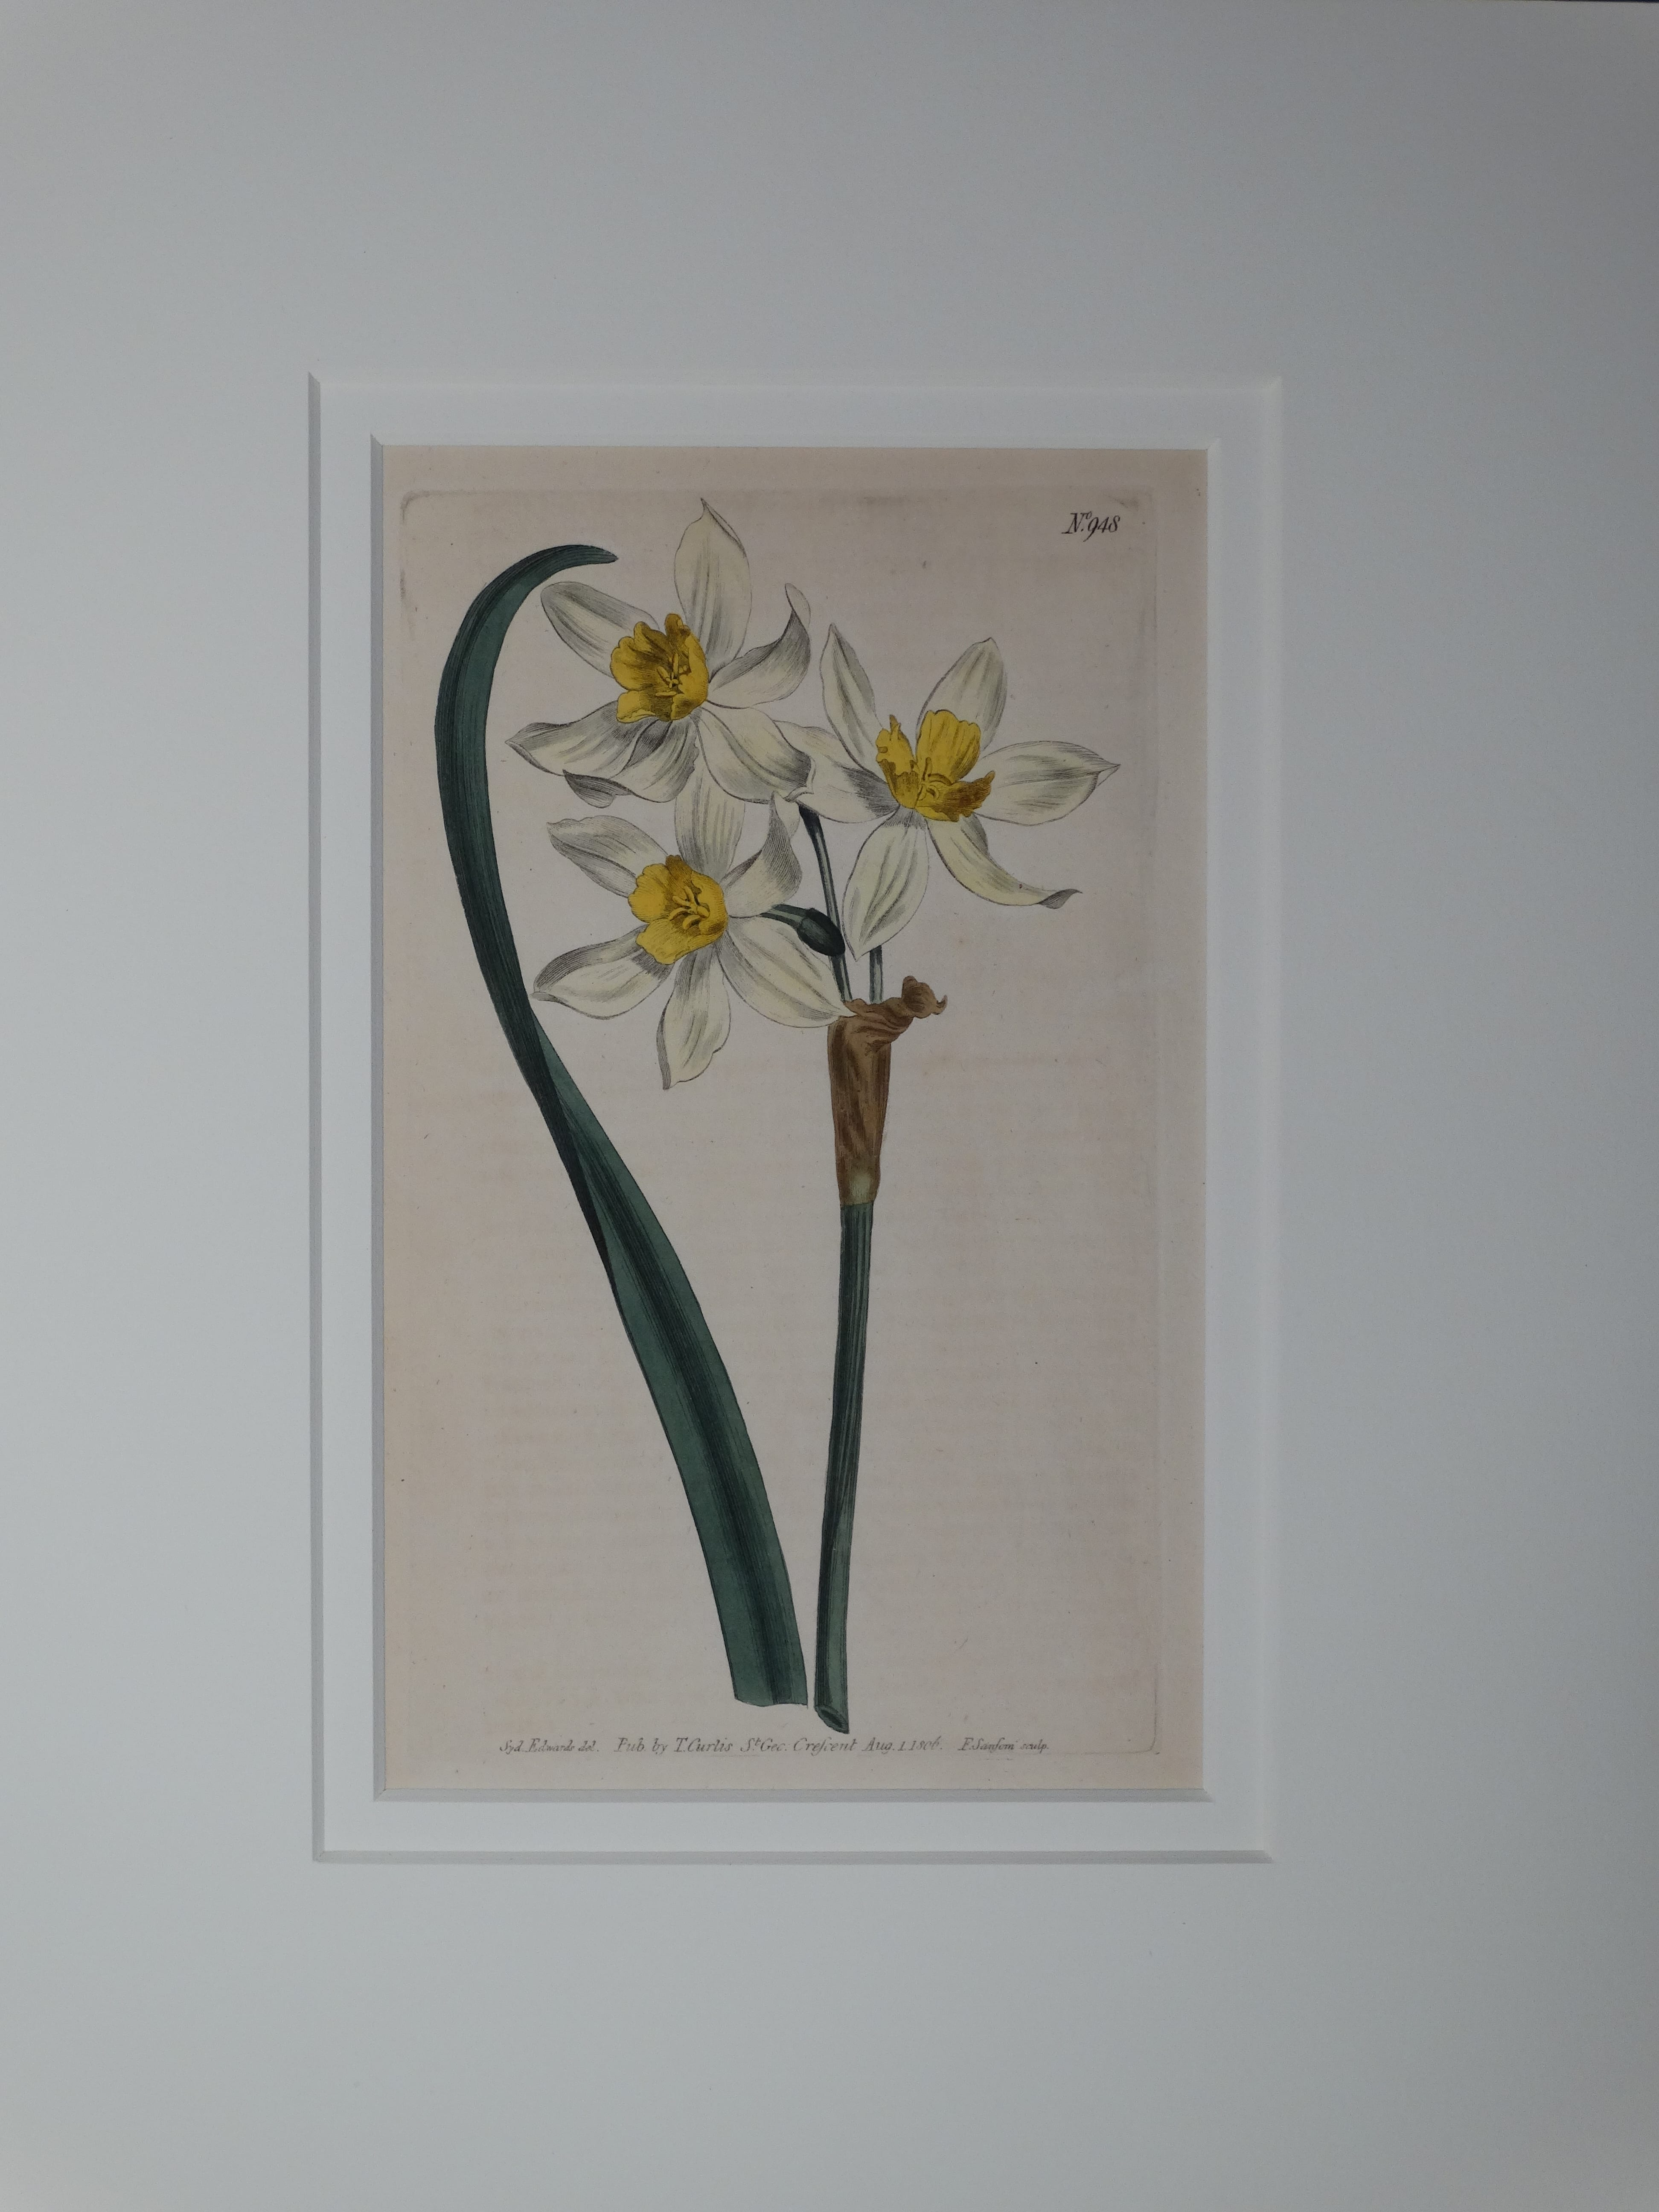 Narcissus by Curtis, #948